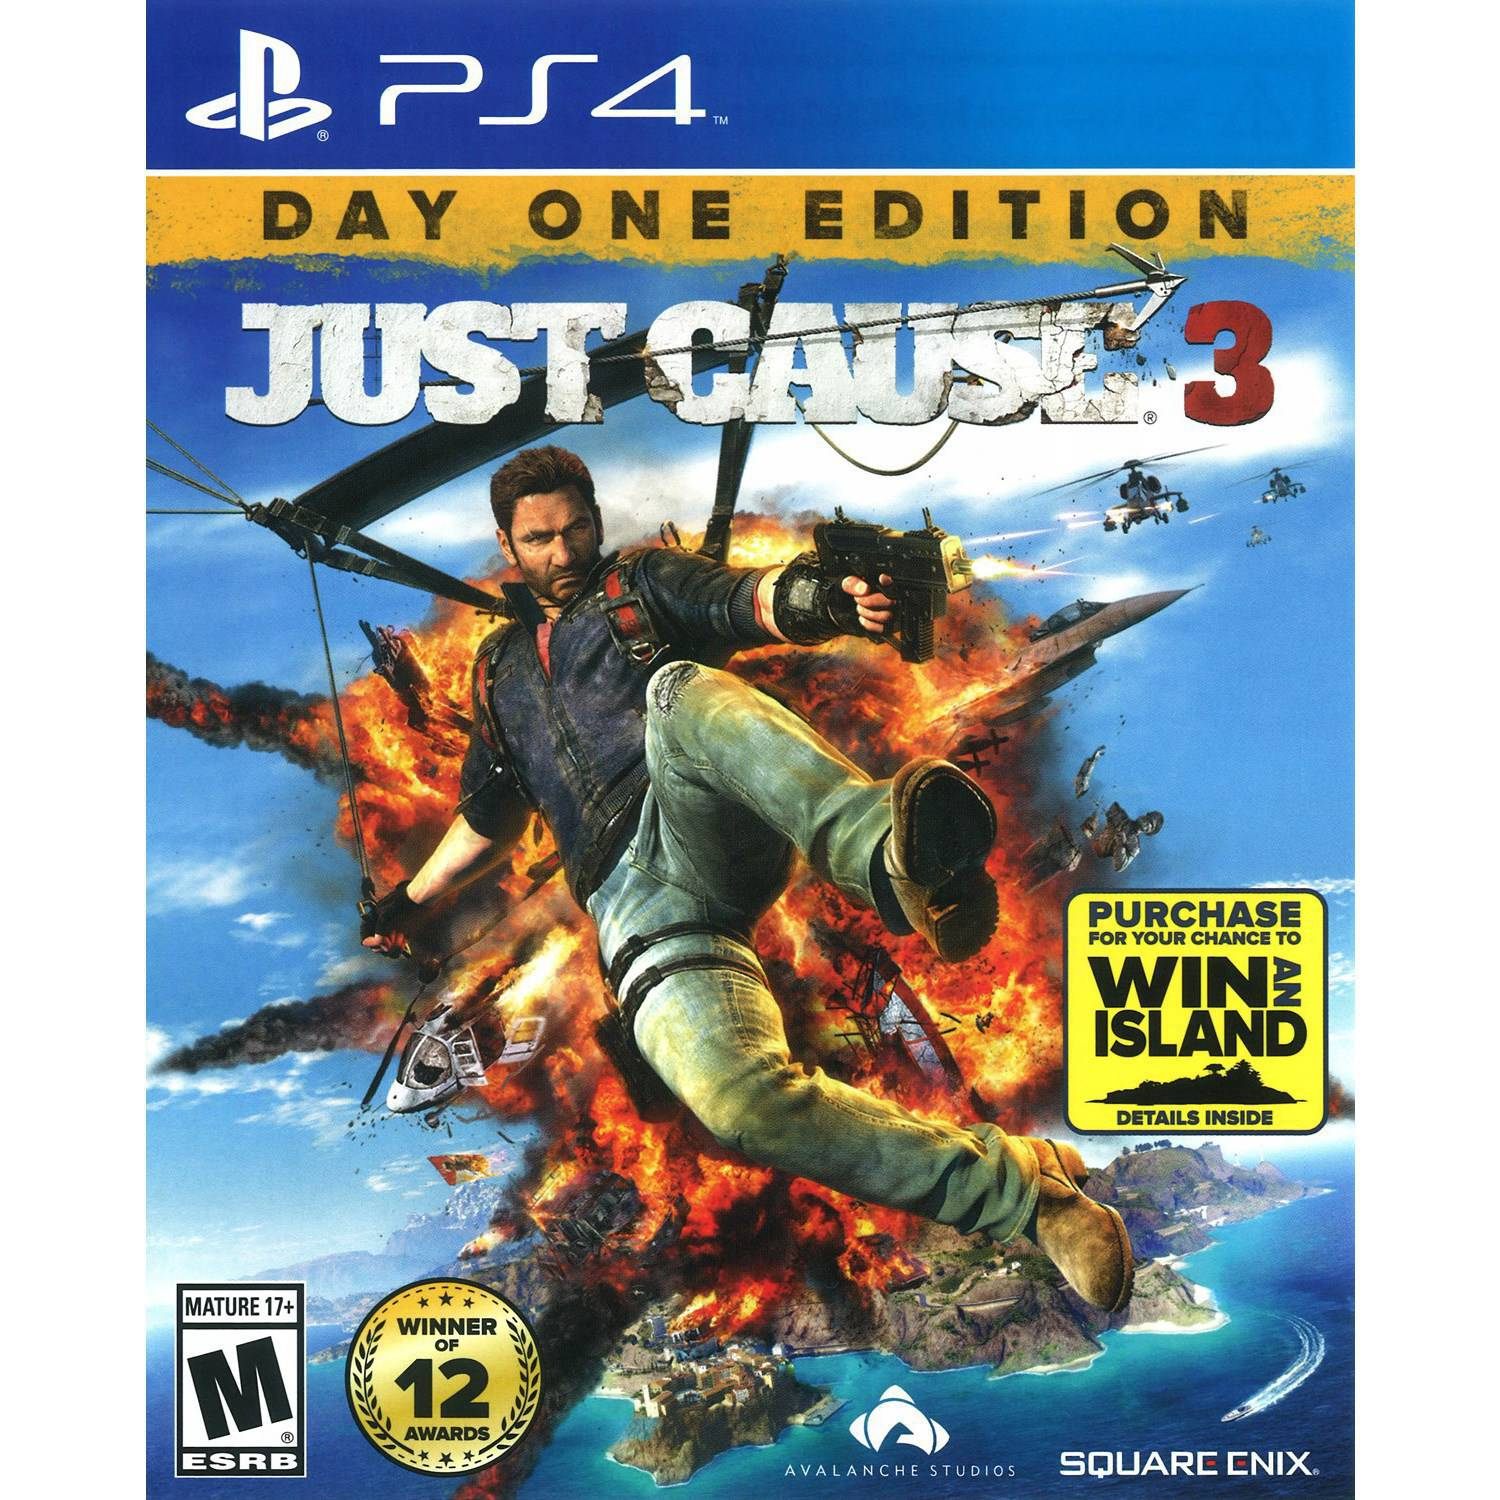 Just Cause 3 (Playstation 4) by Avalanche Studios